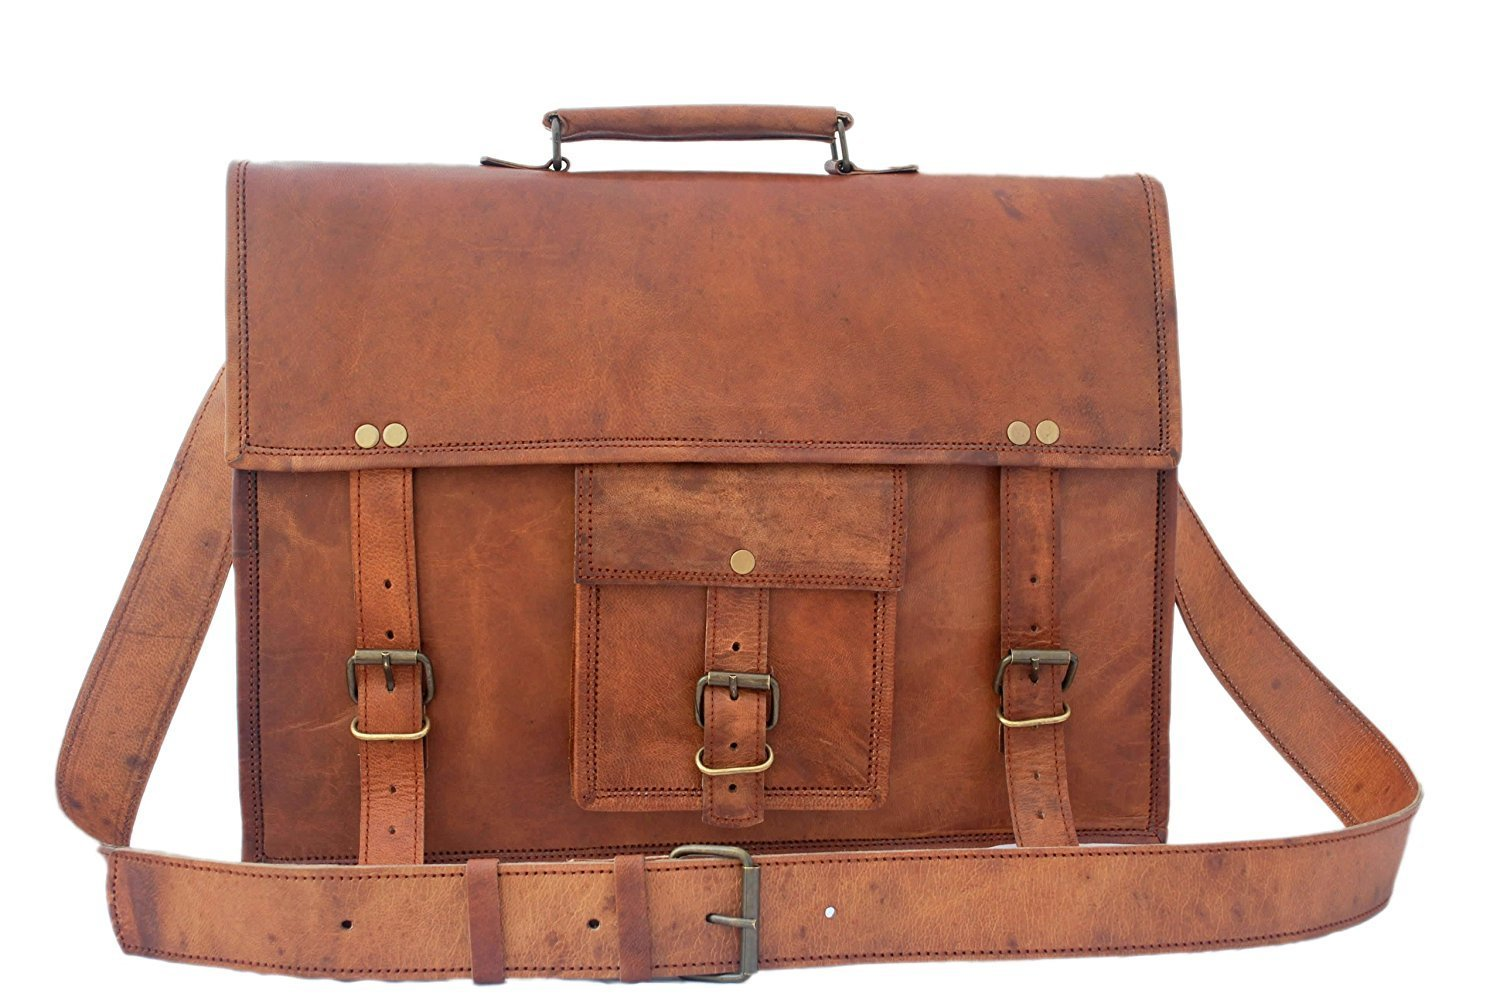 16 Inch Leather Vintage Rustic Crossbody Messenger Courier Satchel Bag Gift Men Women ~ Business Work Briefcase Carry Laptop Computer Book Handmade Rugged & Distressed~ Everyday Office (16)